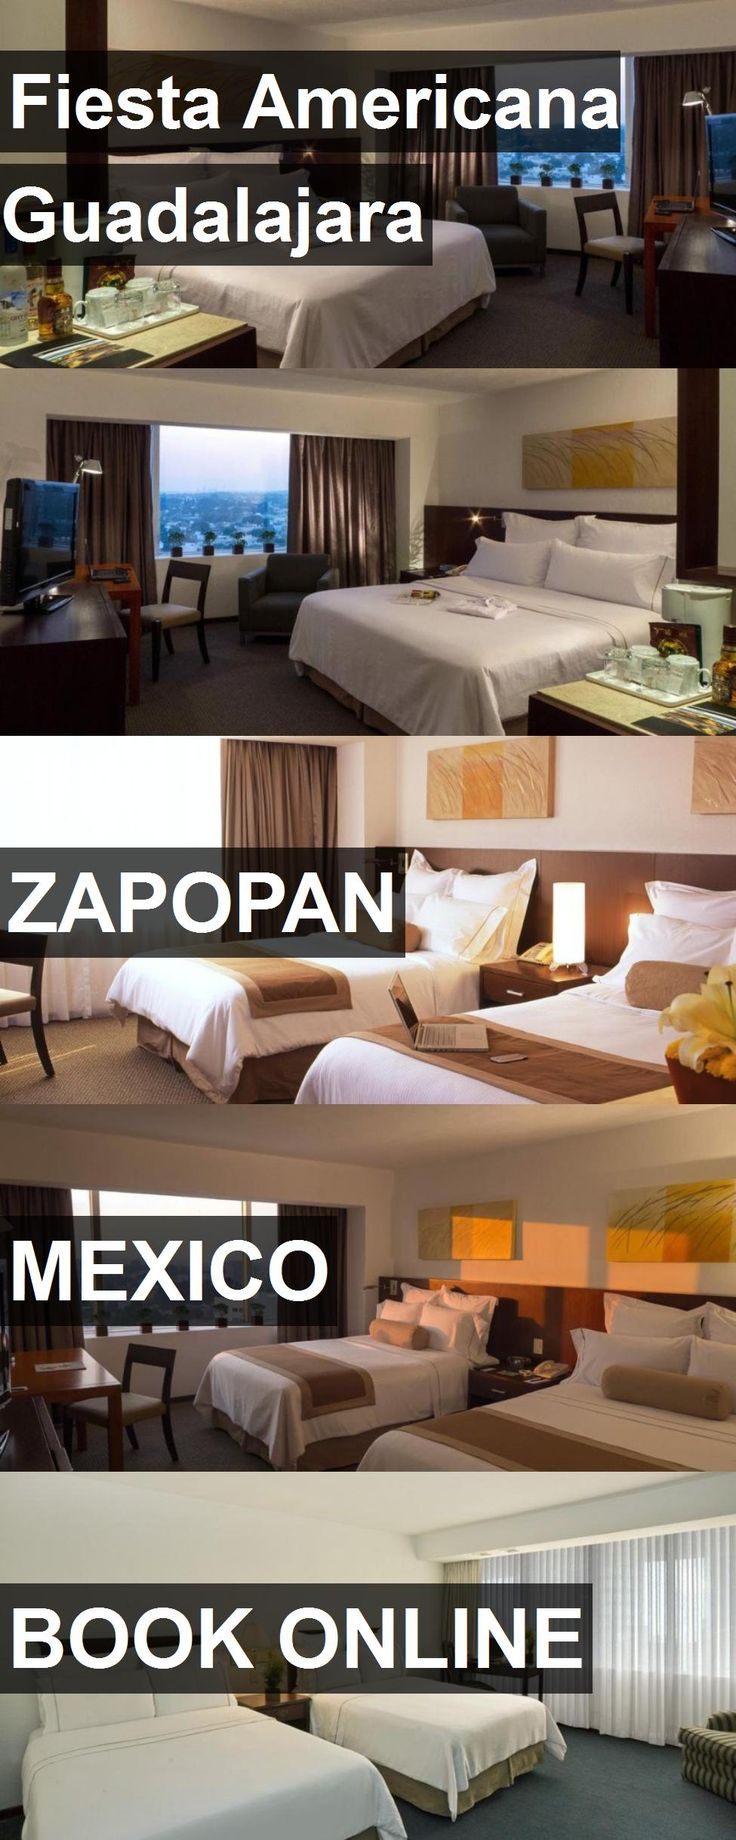 Hotel Fiesta Americana Guadalajara in Zapopan, Mexico. For more information, photos, reviews and best prices please follow the link. #Mexico #Zapopan #travel #vacation #hotel